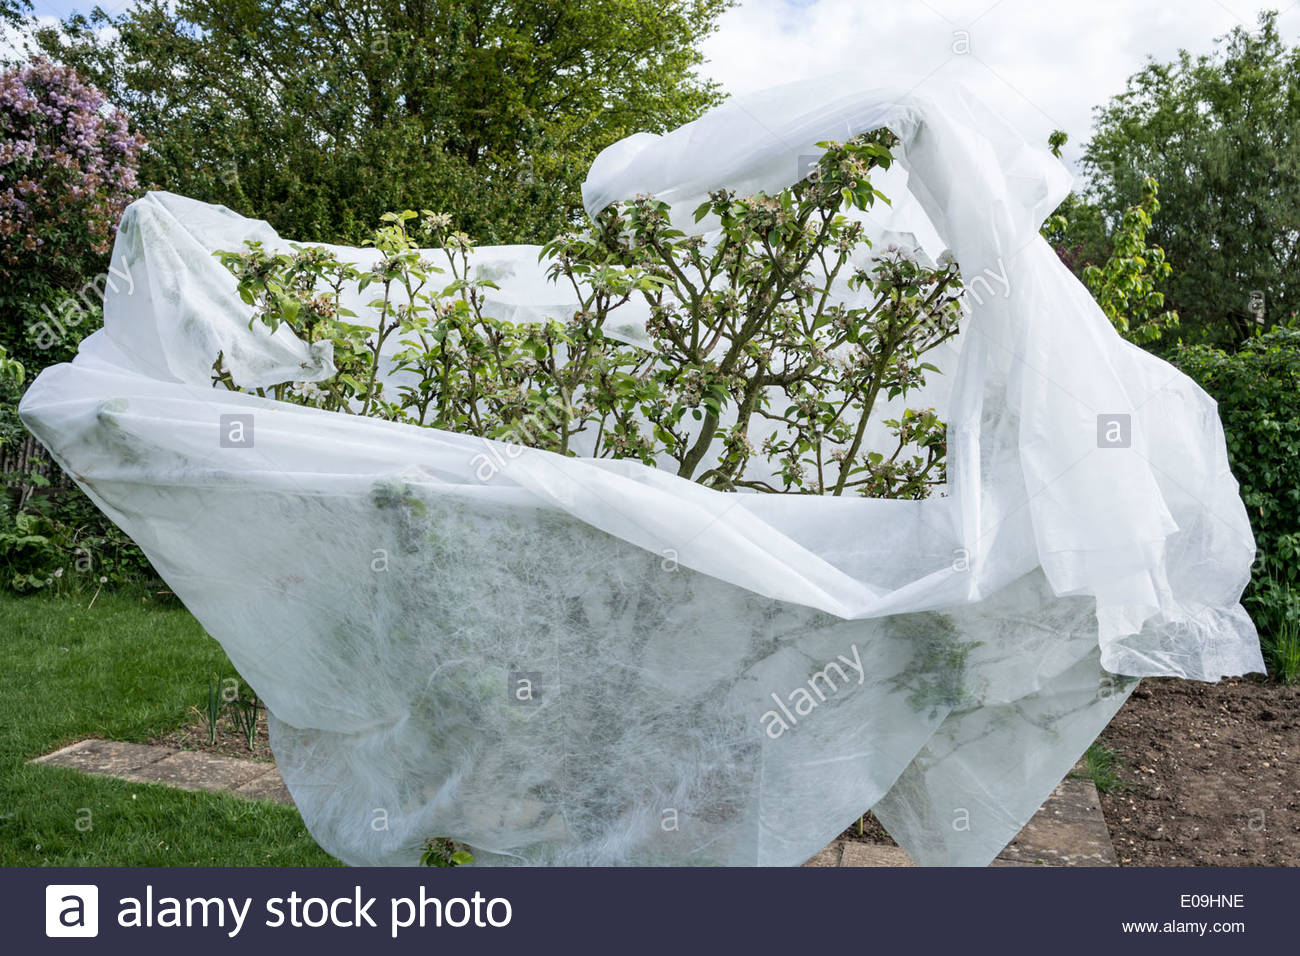 Apple tree partially covered in fleece material for frost protection - Stock Image